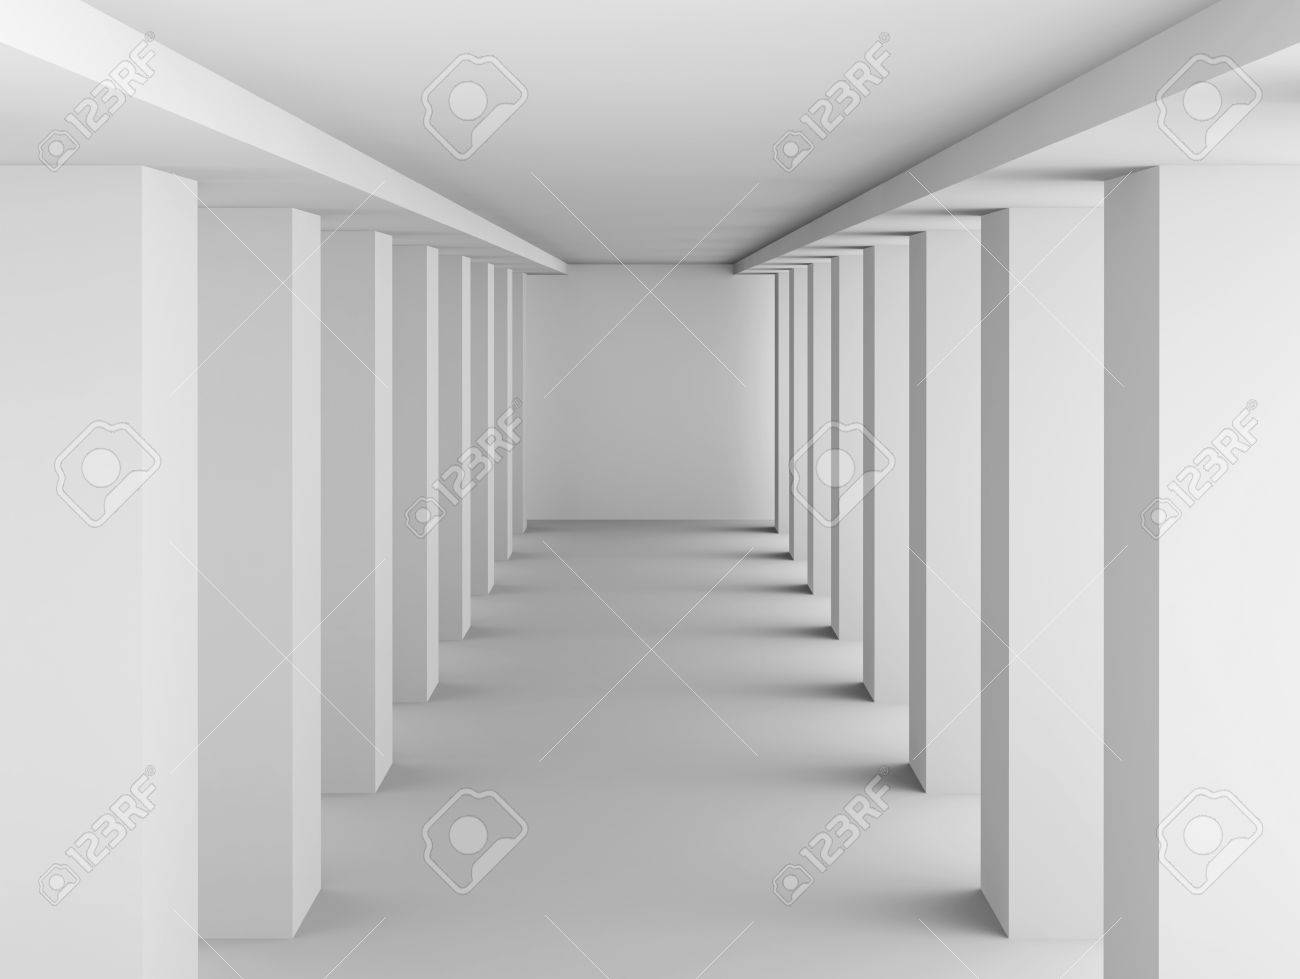 White Columns Hall Background Stock Photo Picture And Royalty 1300x979